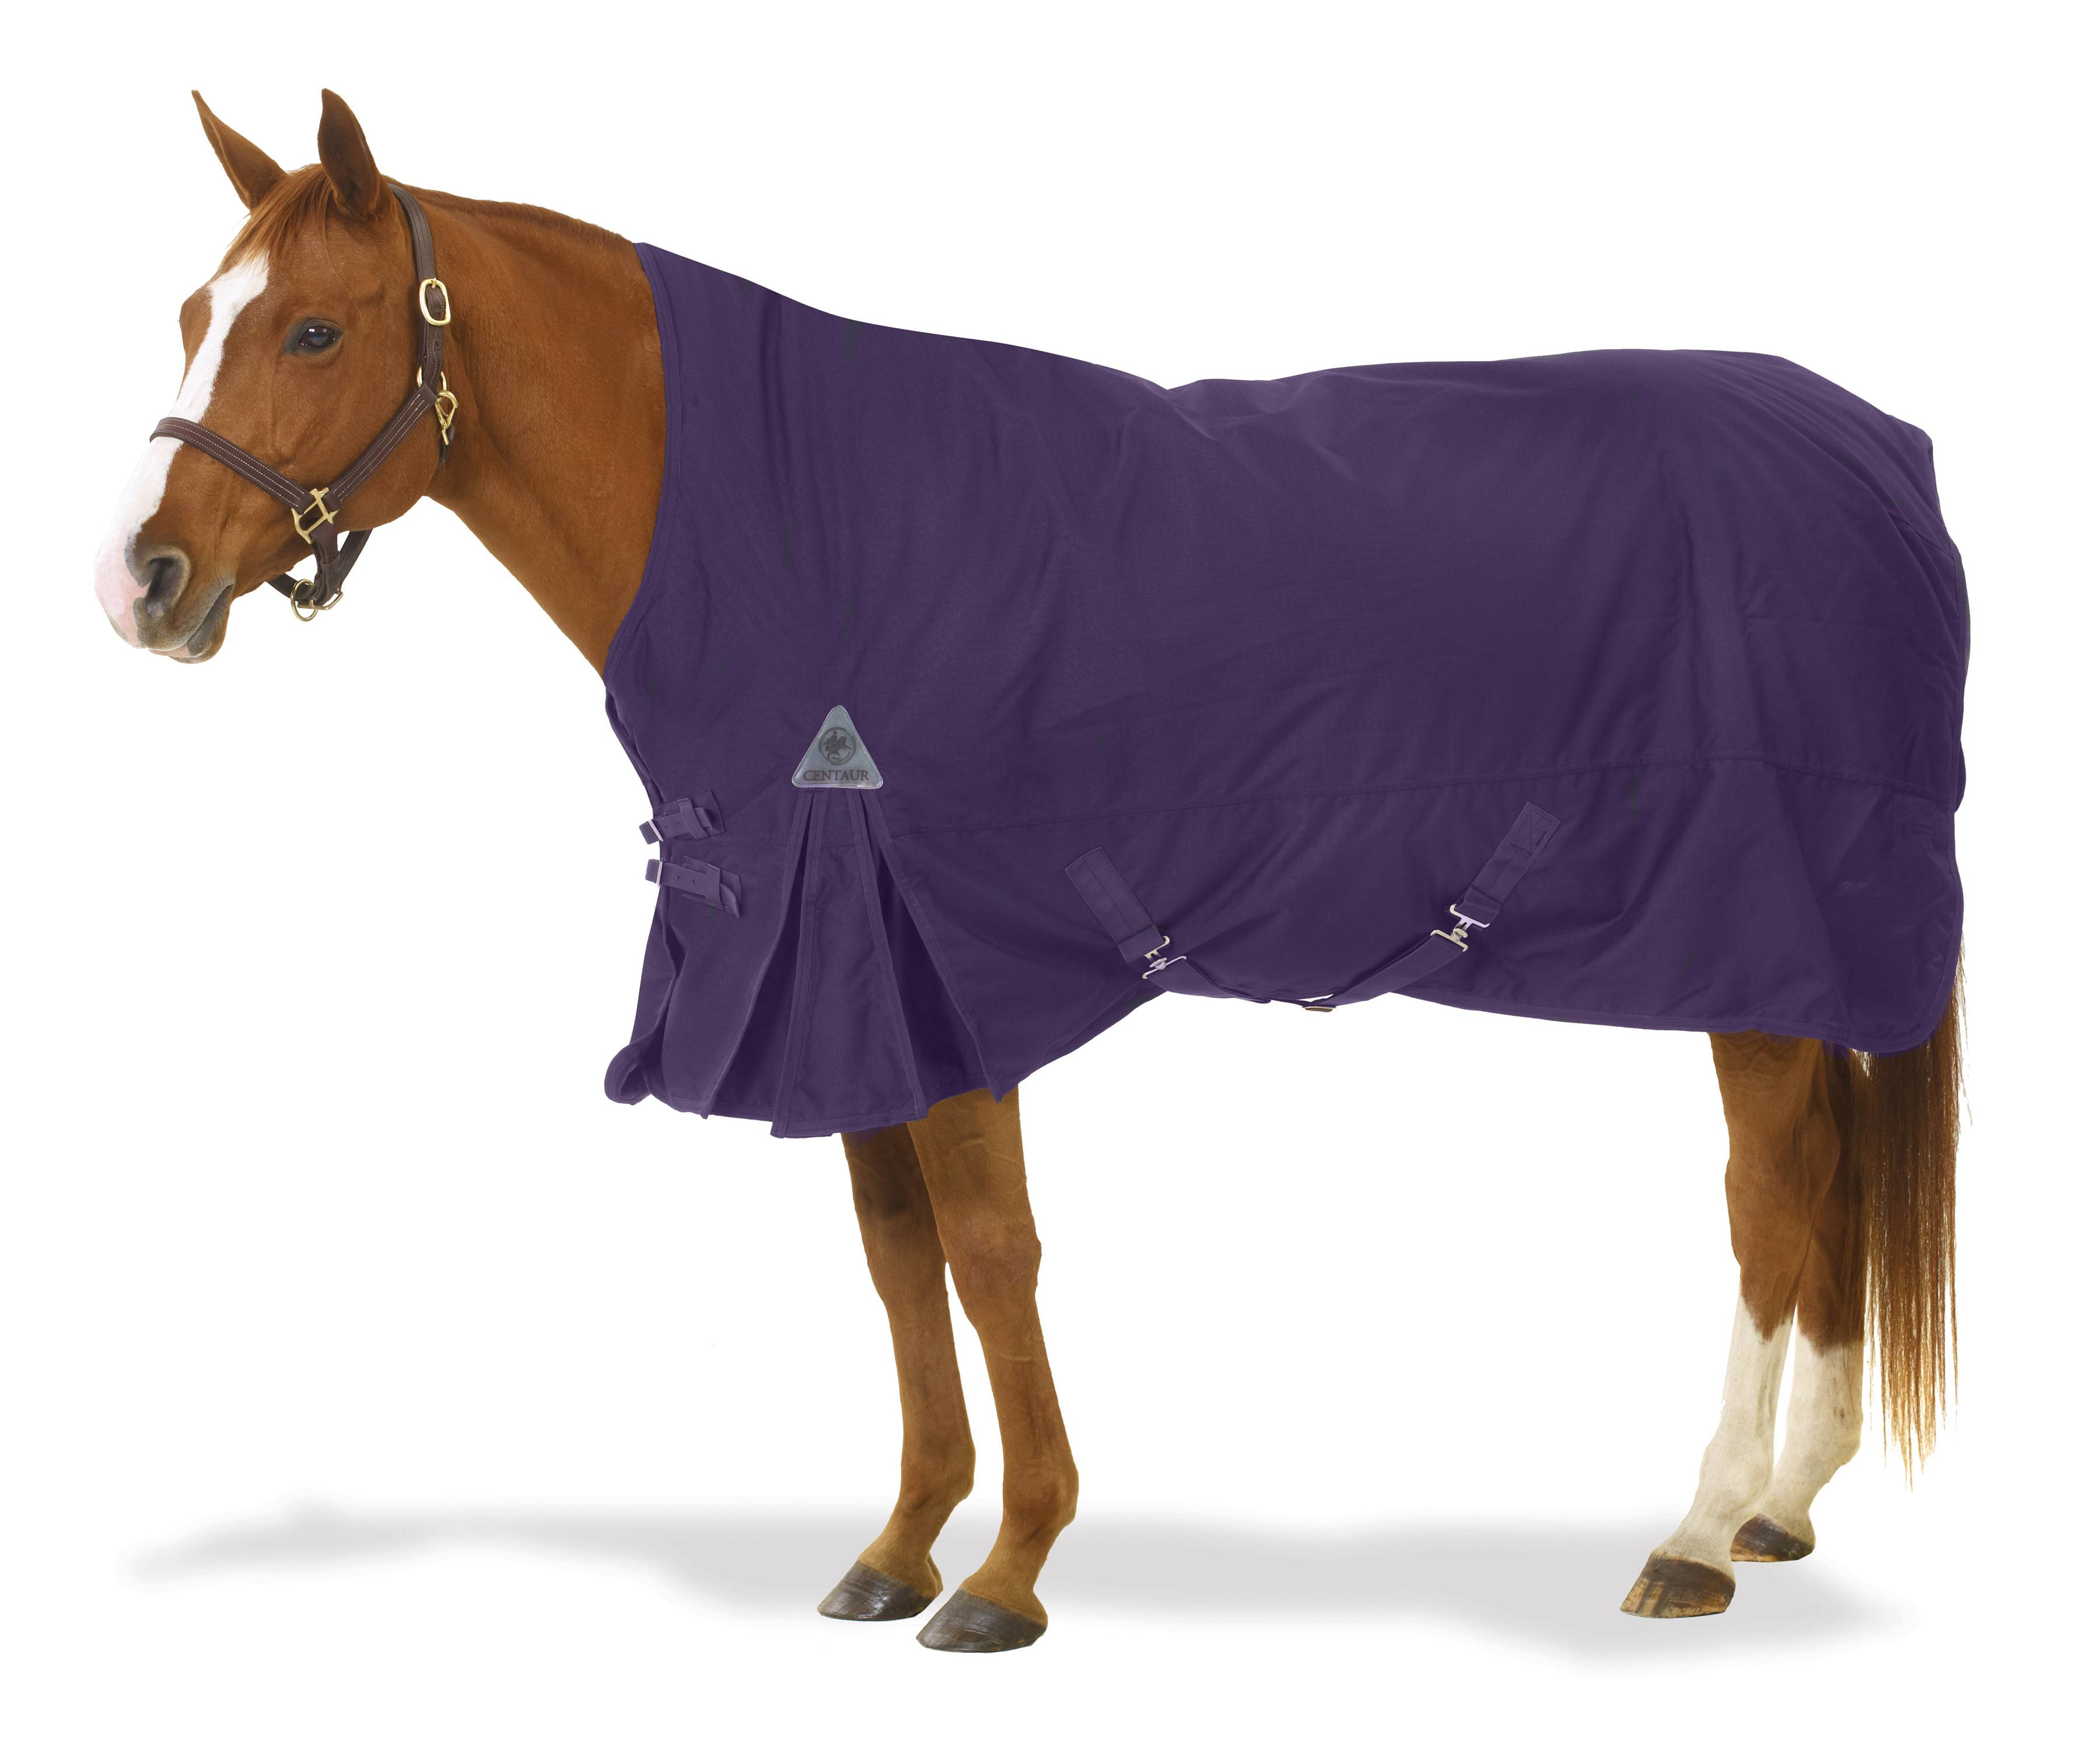 Centaur 1200D Mid Neck Turnout Blanket - Heavy (300g)